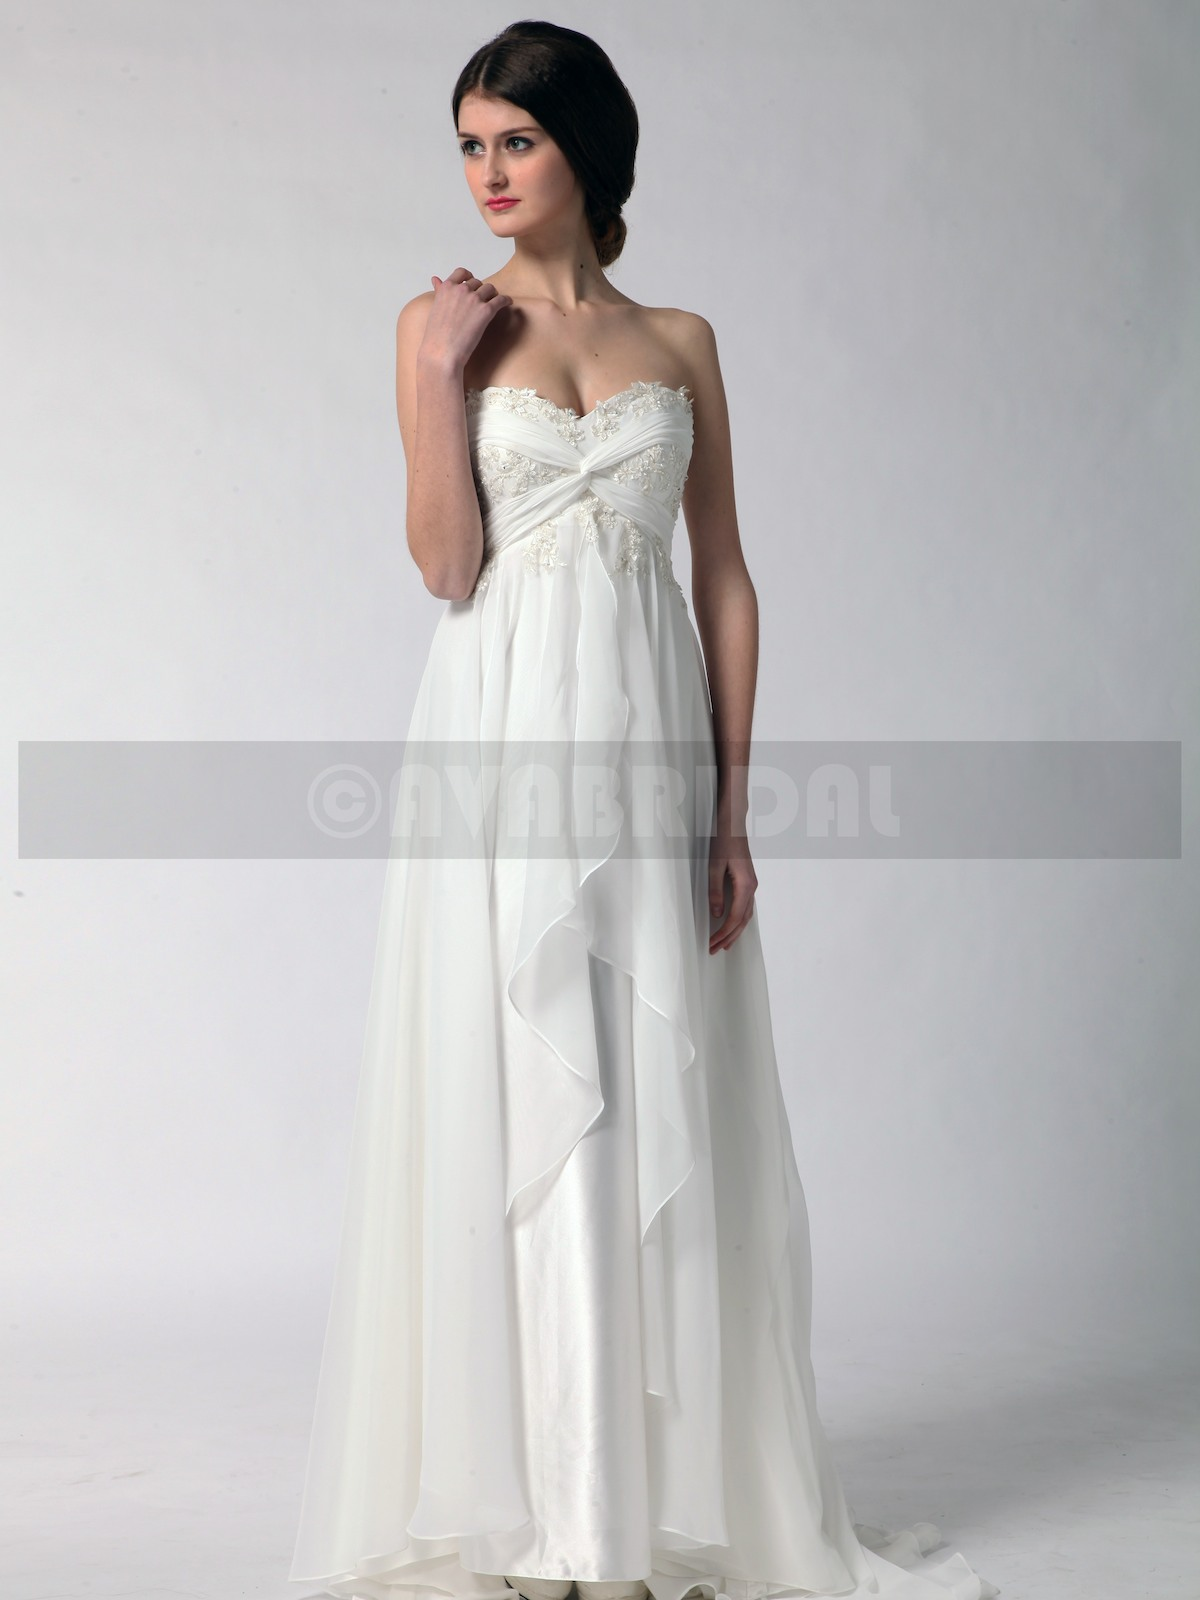 Grecian Goddess Wedding Dress - Stacey - Front